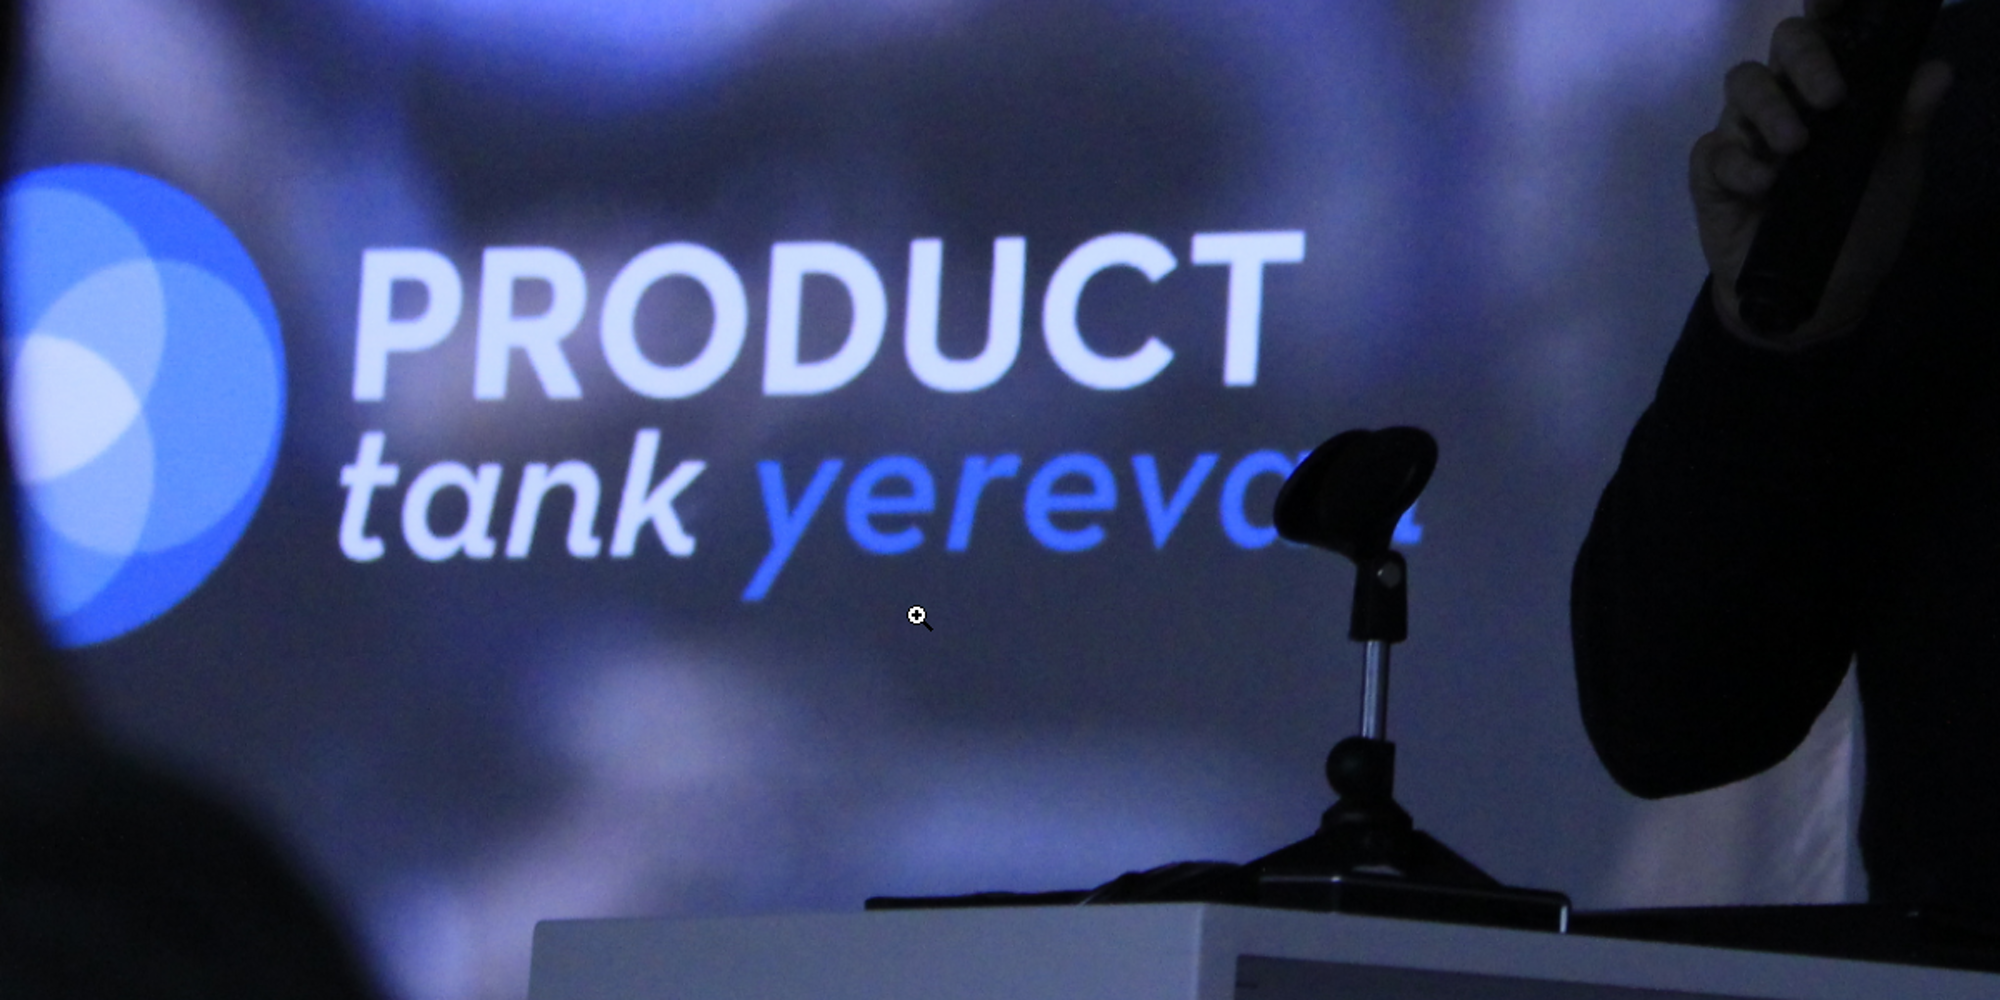 ProductTank Yerevan September 2016